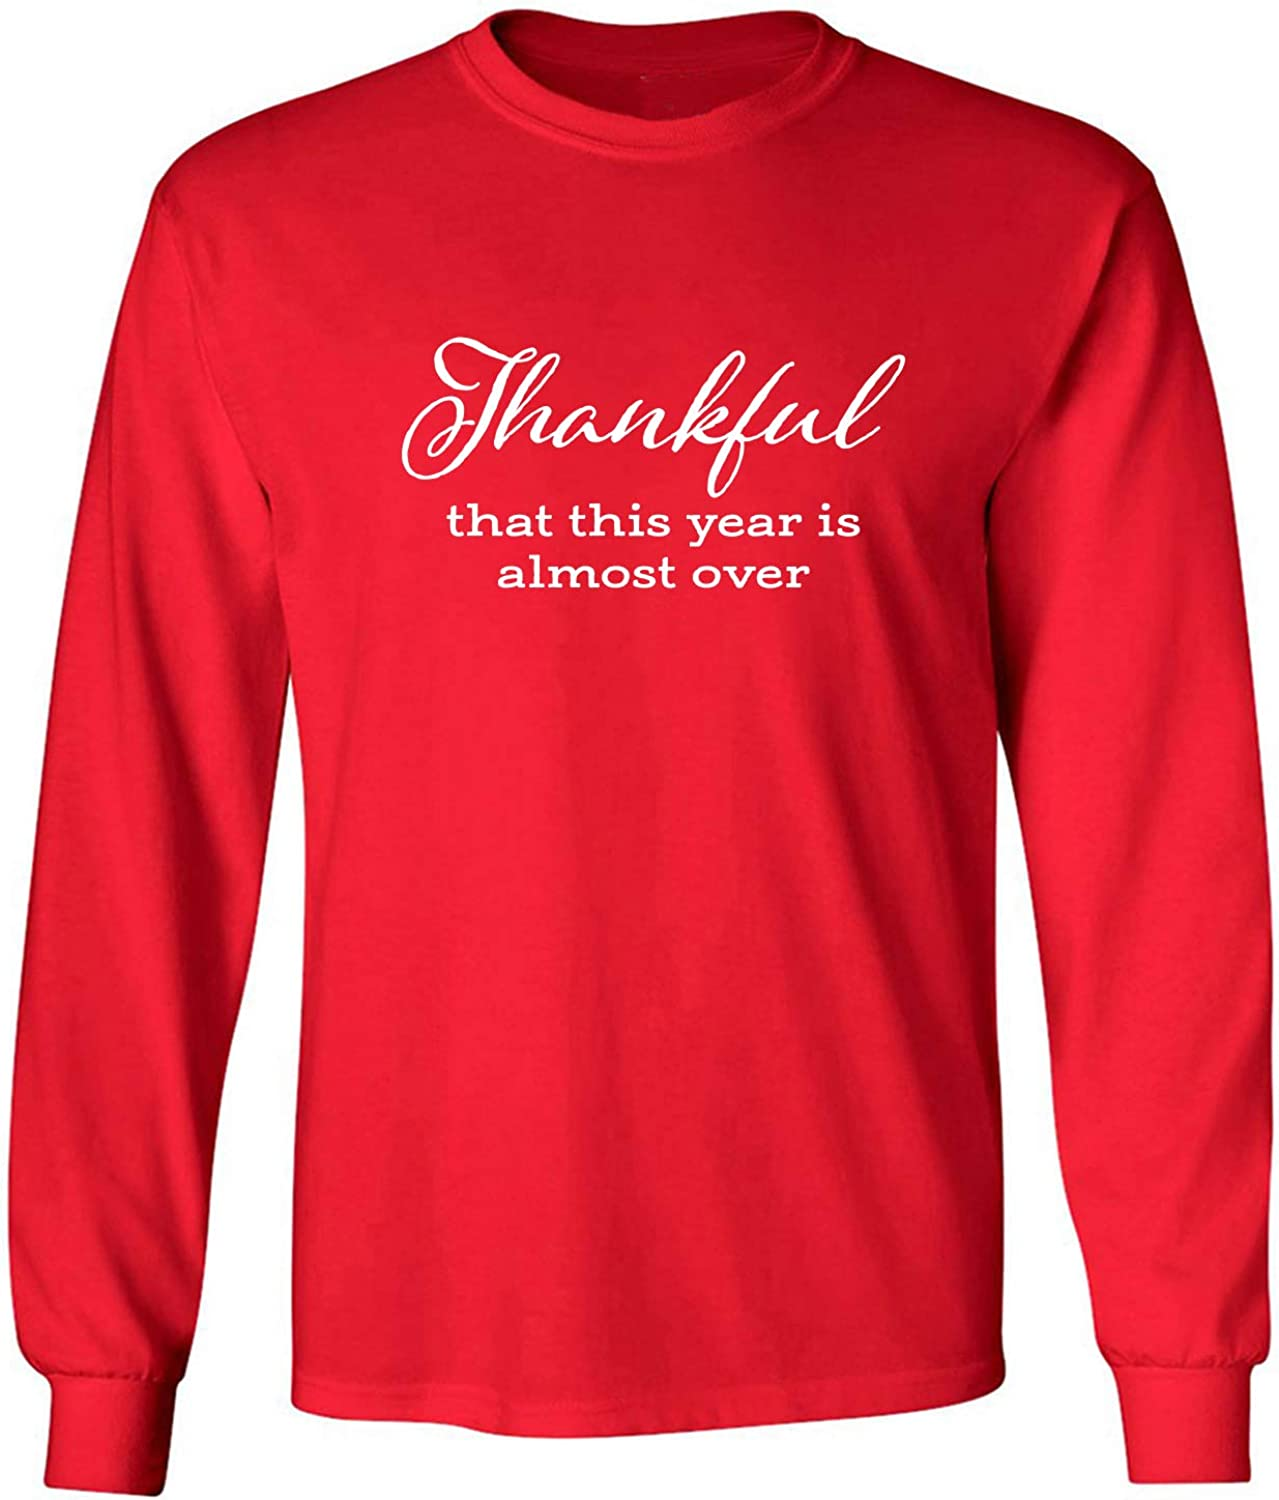 Thankful This Year is Almost Over Adult Long Sleeve T-Shirt in Red - XXX-Large